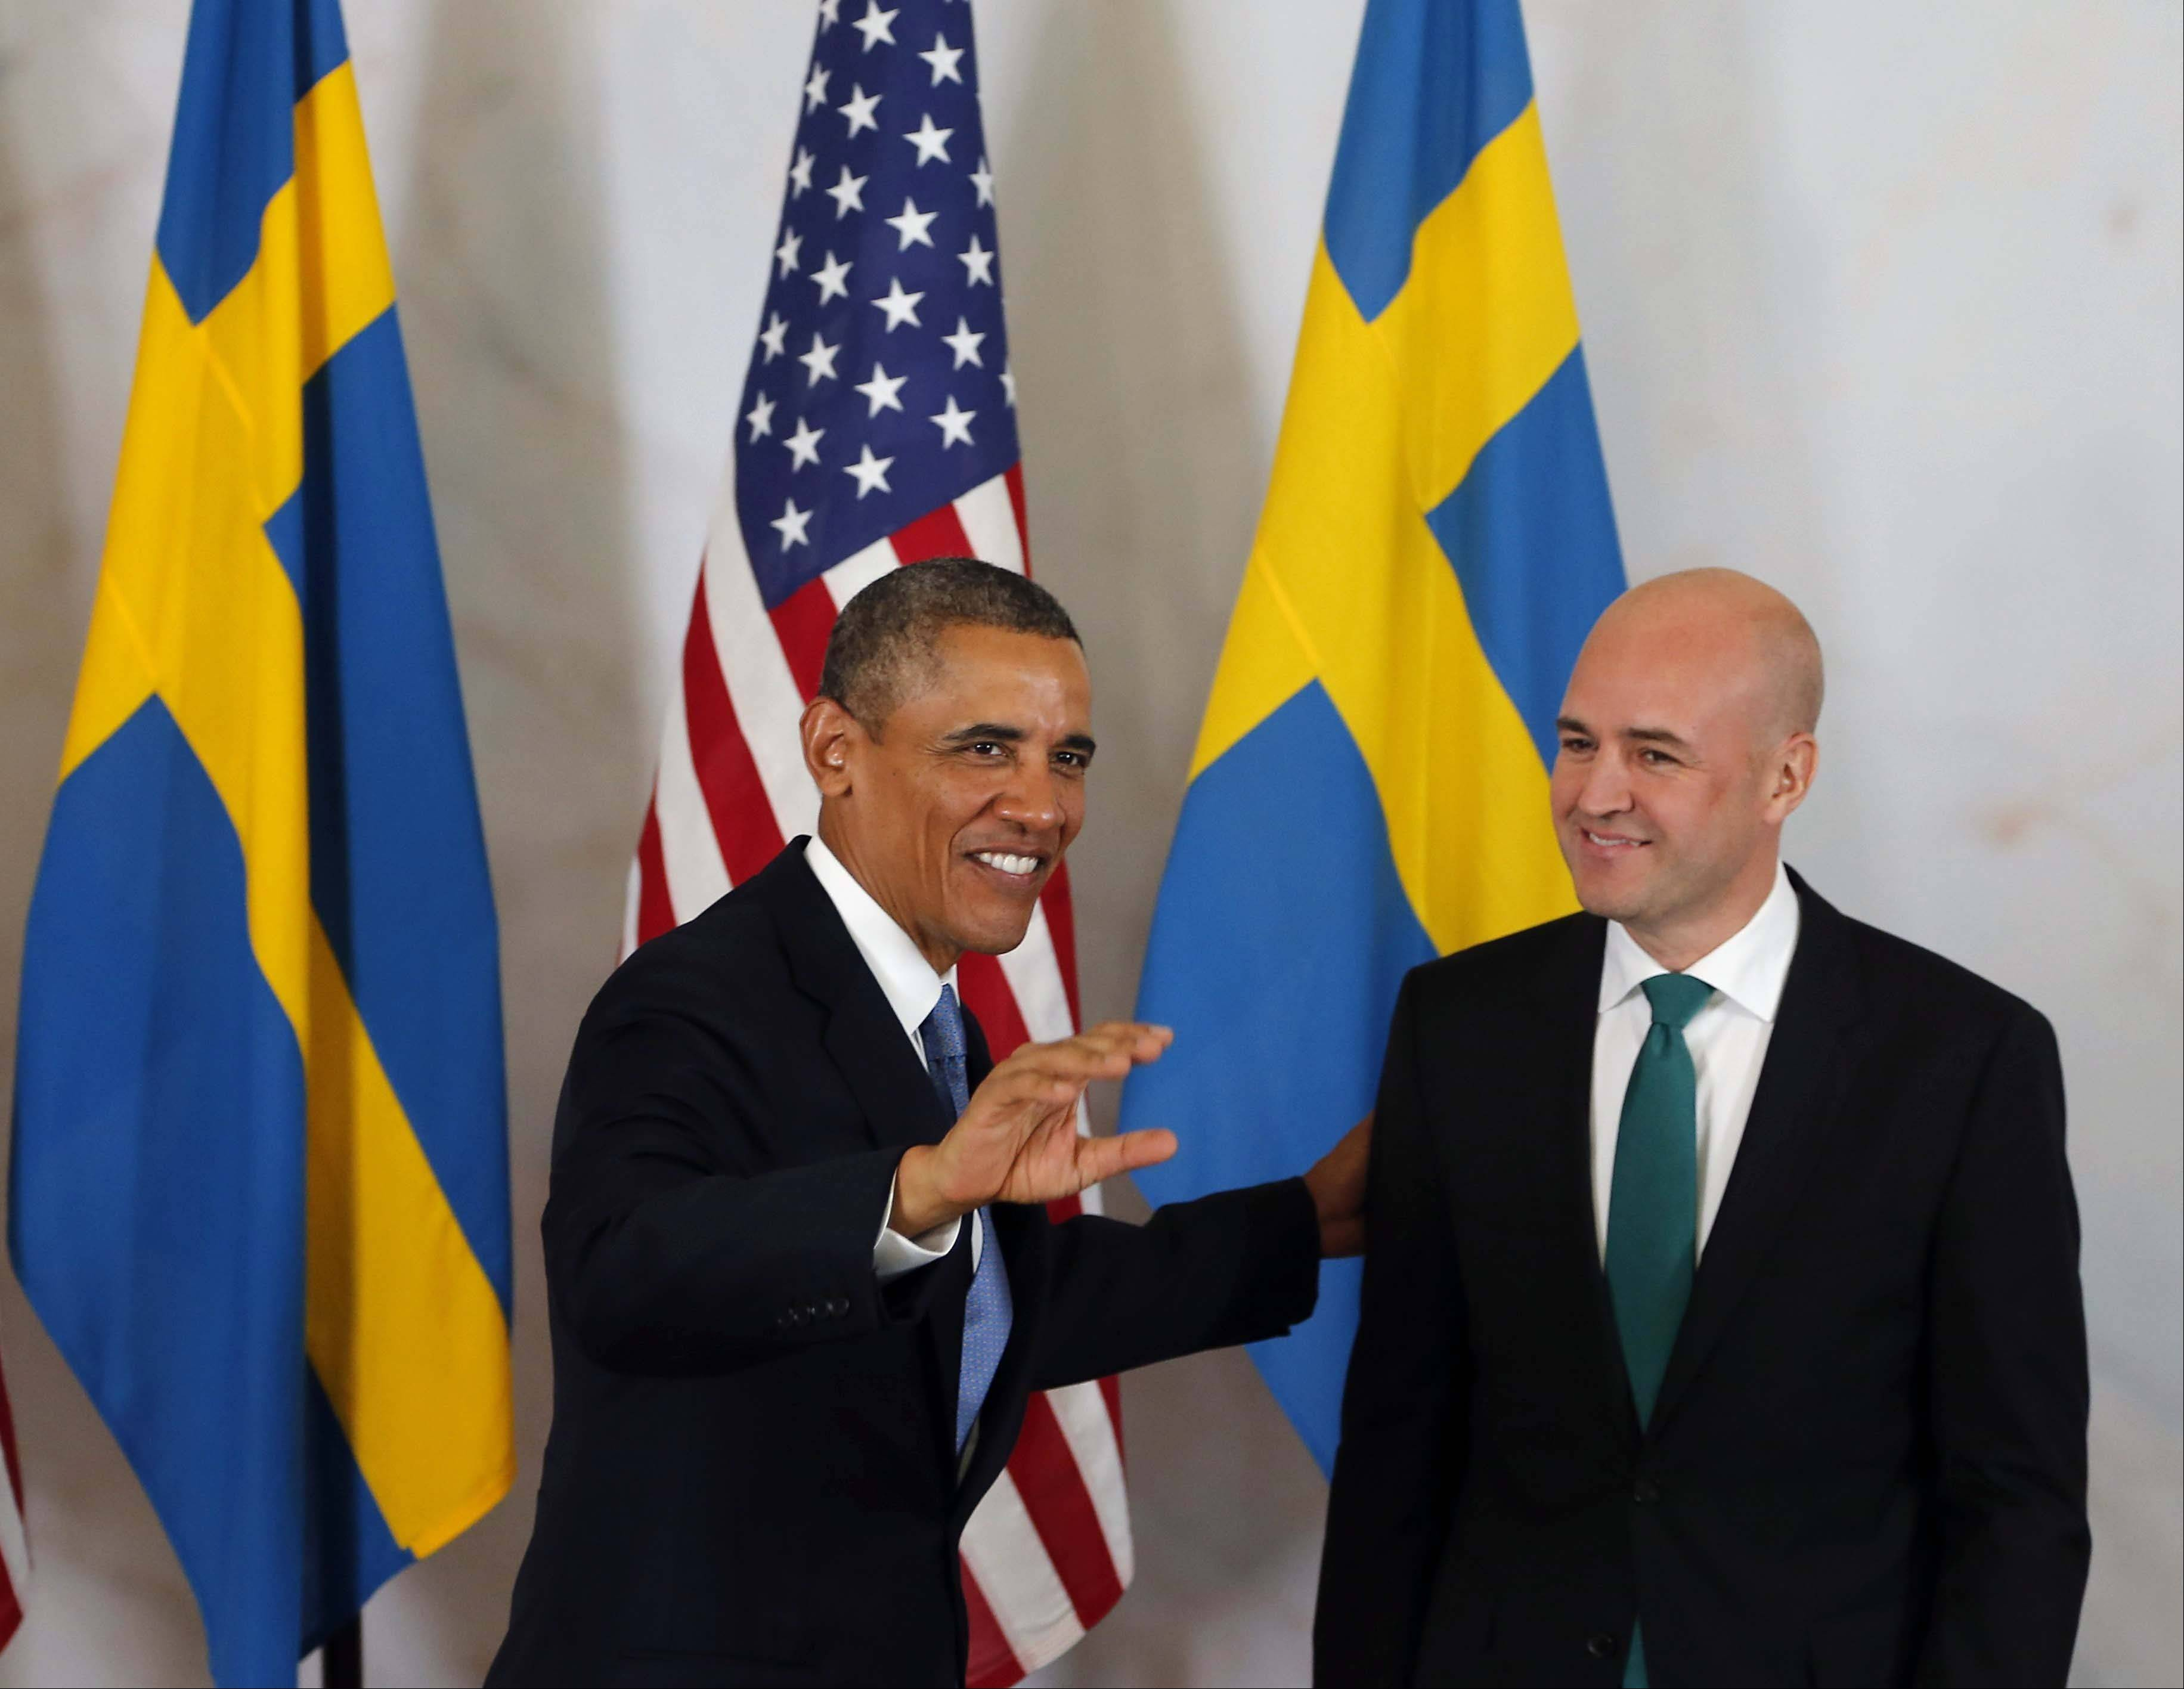 President Barack Obama, left, meets Wednesday with Sweden�s Prime Minister Fredrik Reinfeldt at Rosenbad, the seat of the Swedish government in Stockholm, Sweden. President Barack Obama is opening a three-day overseas trip with a stop in Stockholm, ahead of the G-20 Summit in St. Petersburg, Russia.